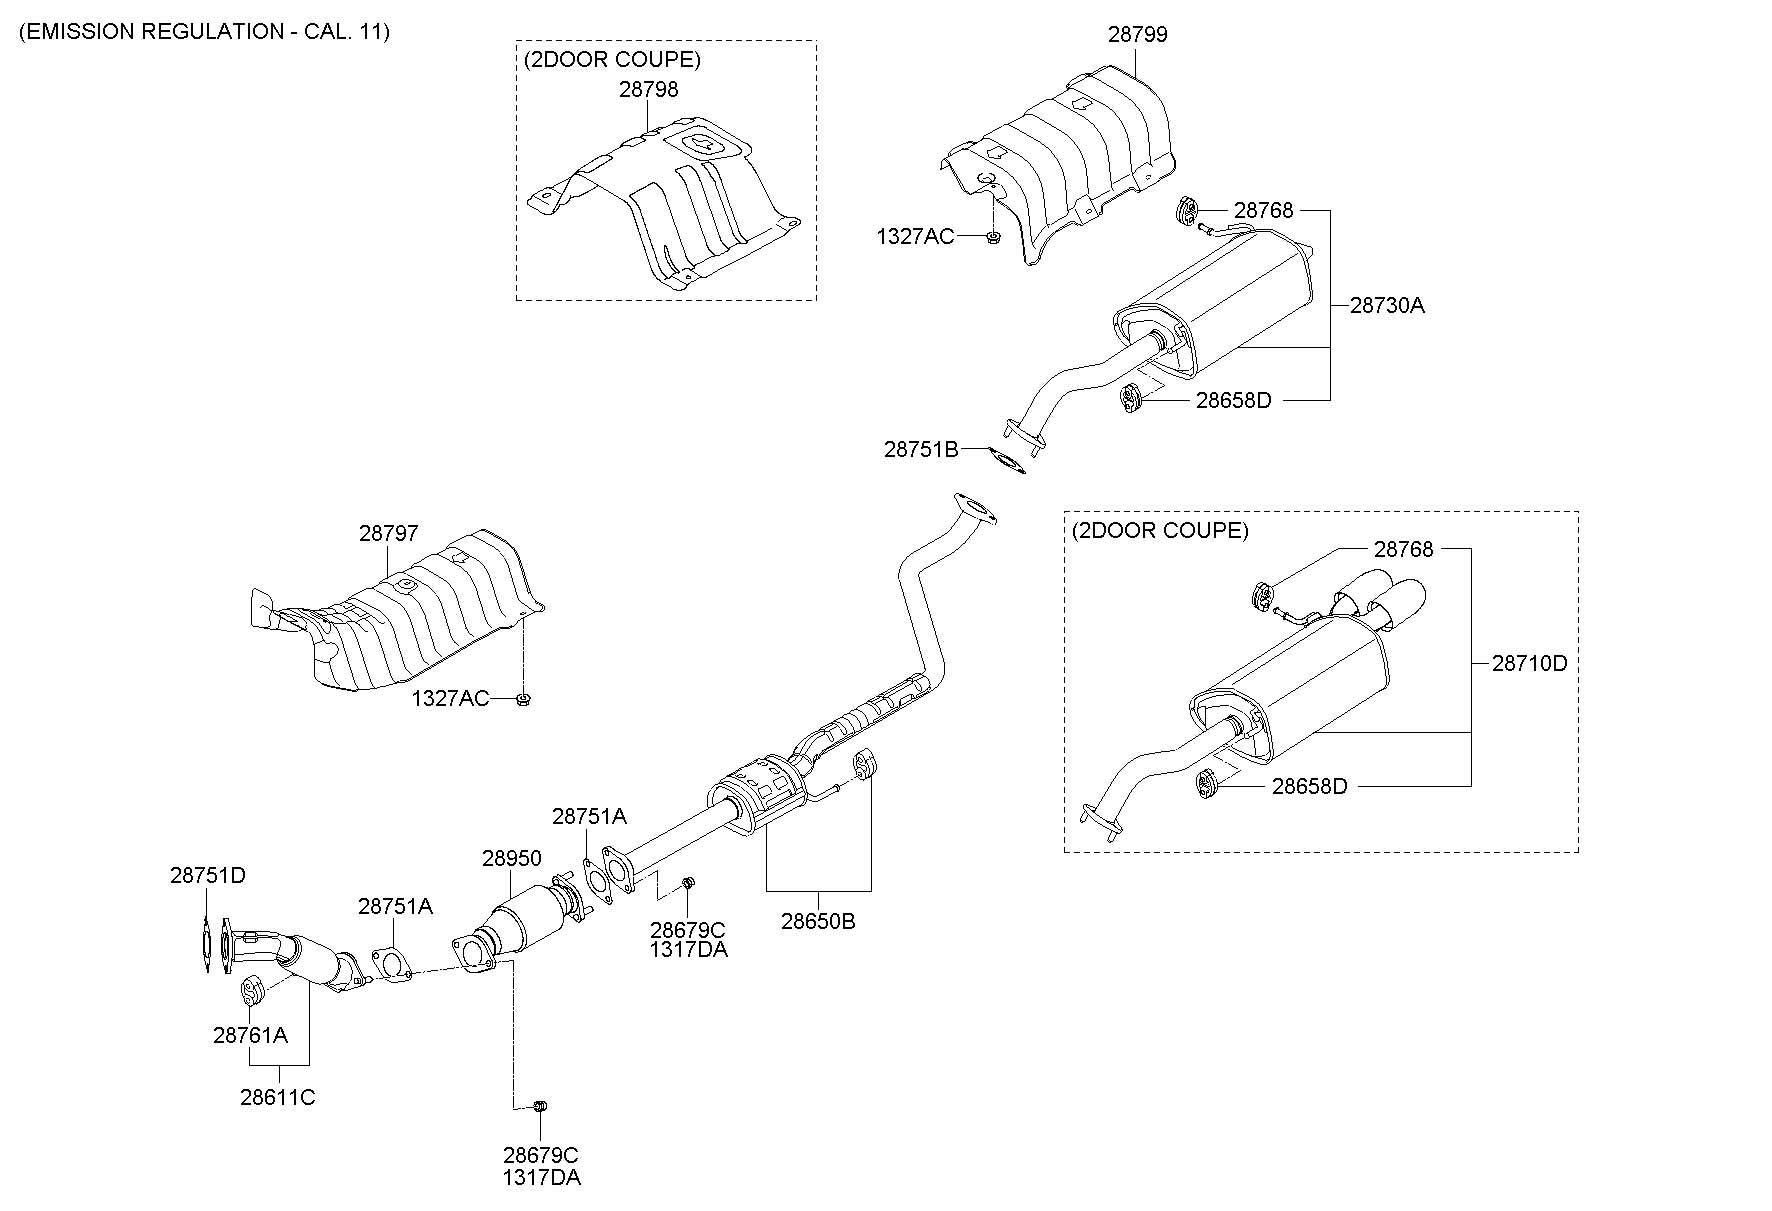 33 Hyundai Elantra Exhaust System Diagram